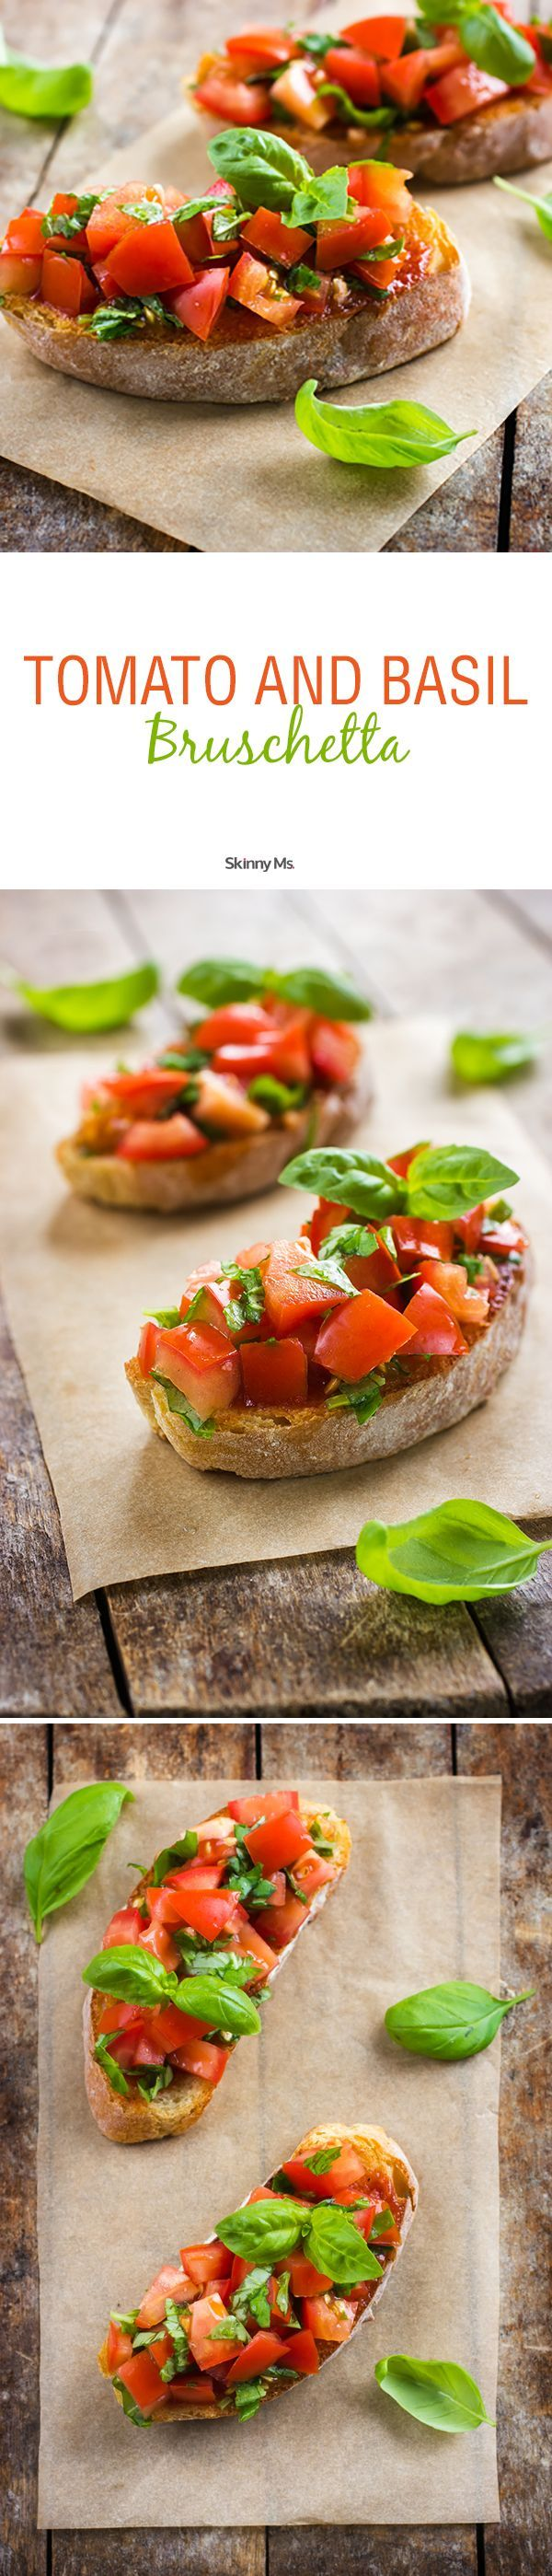 Tomato and Basil Bruschetta is a clean eating snack you will love!  #bruschetta #tomatobasil